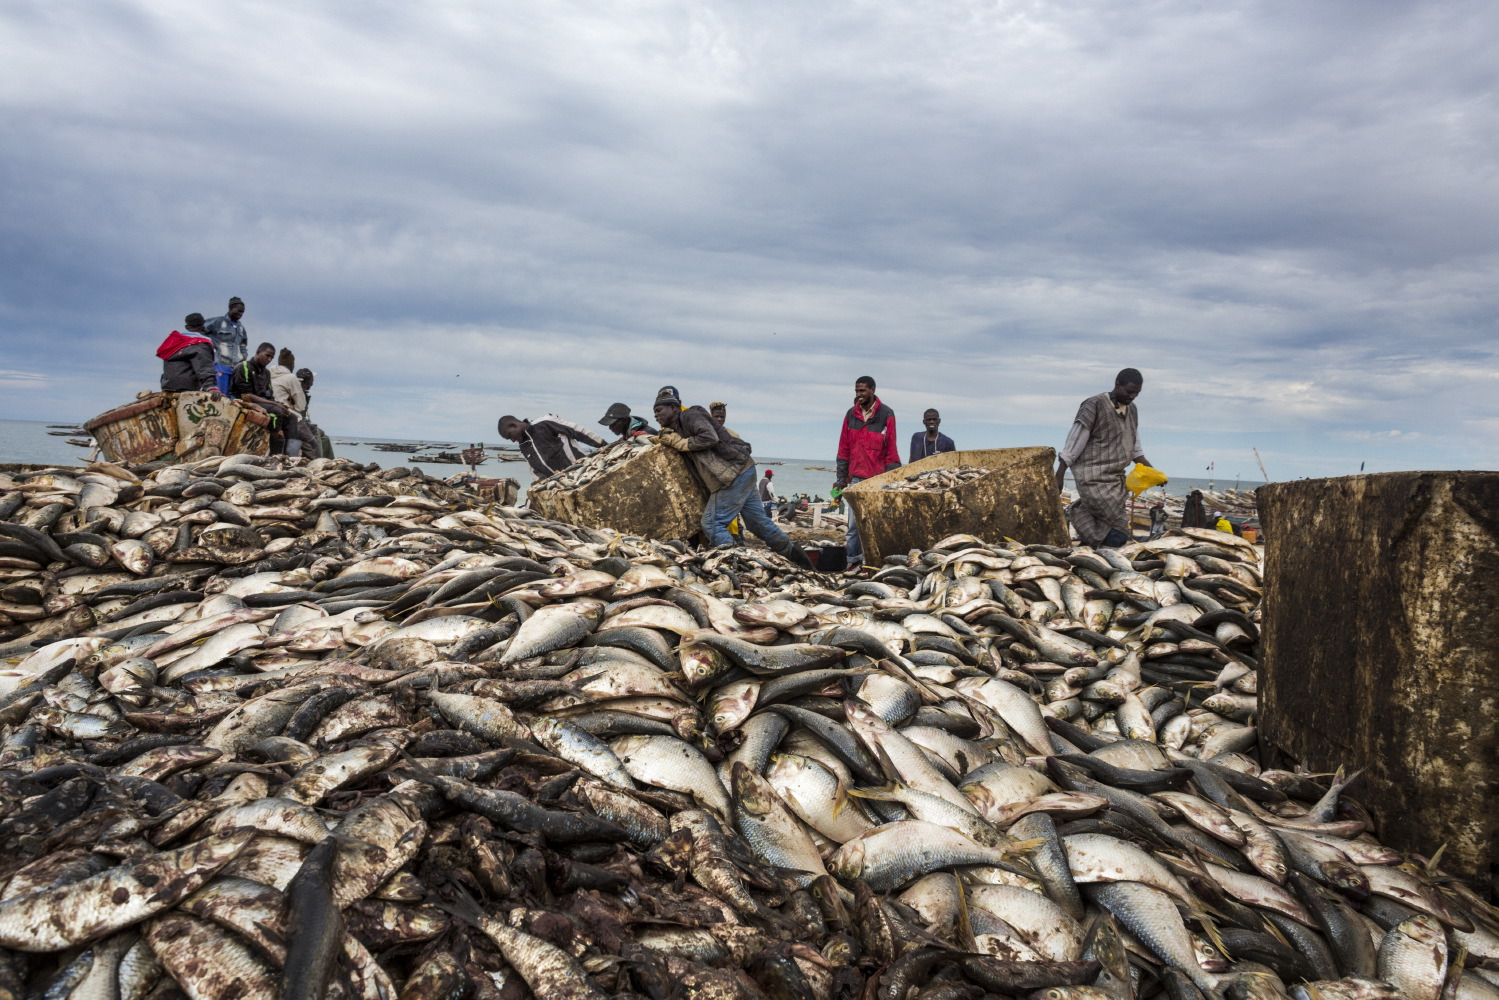 Every year we catch over 100 million tons of fish, plundering seas and oceans, which we continue to pollute with our plastic and toxic residues. One third of global fish stocks are overexploited, meaning we catch them faster than they can reproduce to sustain population levels. Fish is an important source of food supply, particularly for less developed countries. We must reduce fish consumption and allow time for seas and oceans to repopulate.